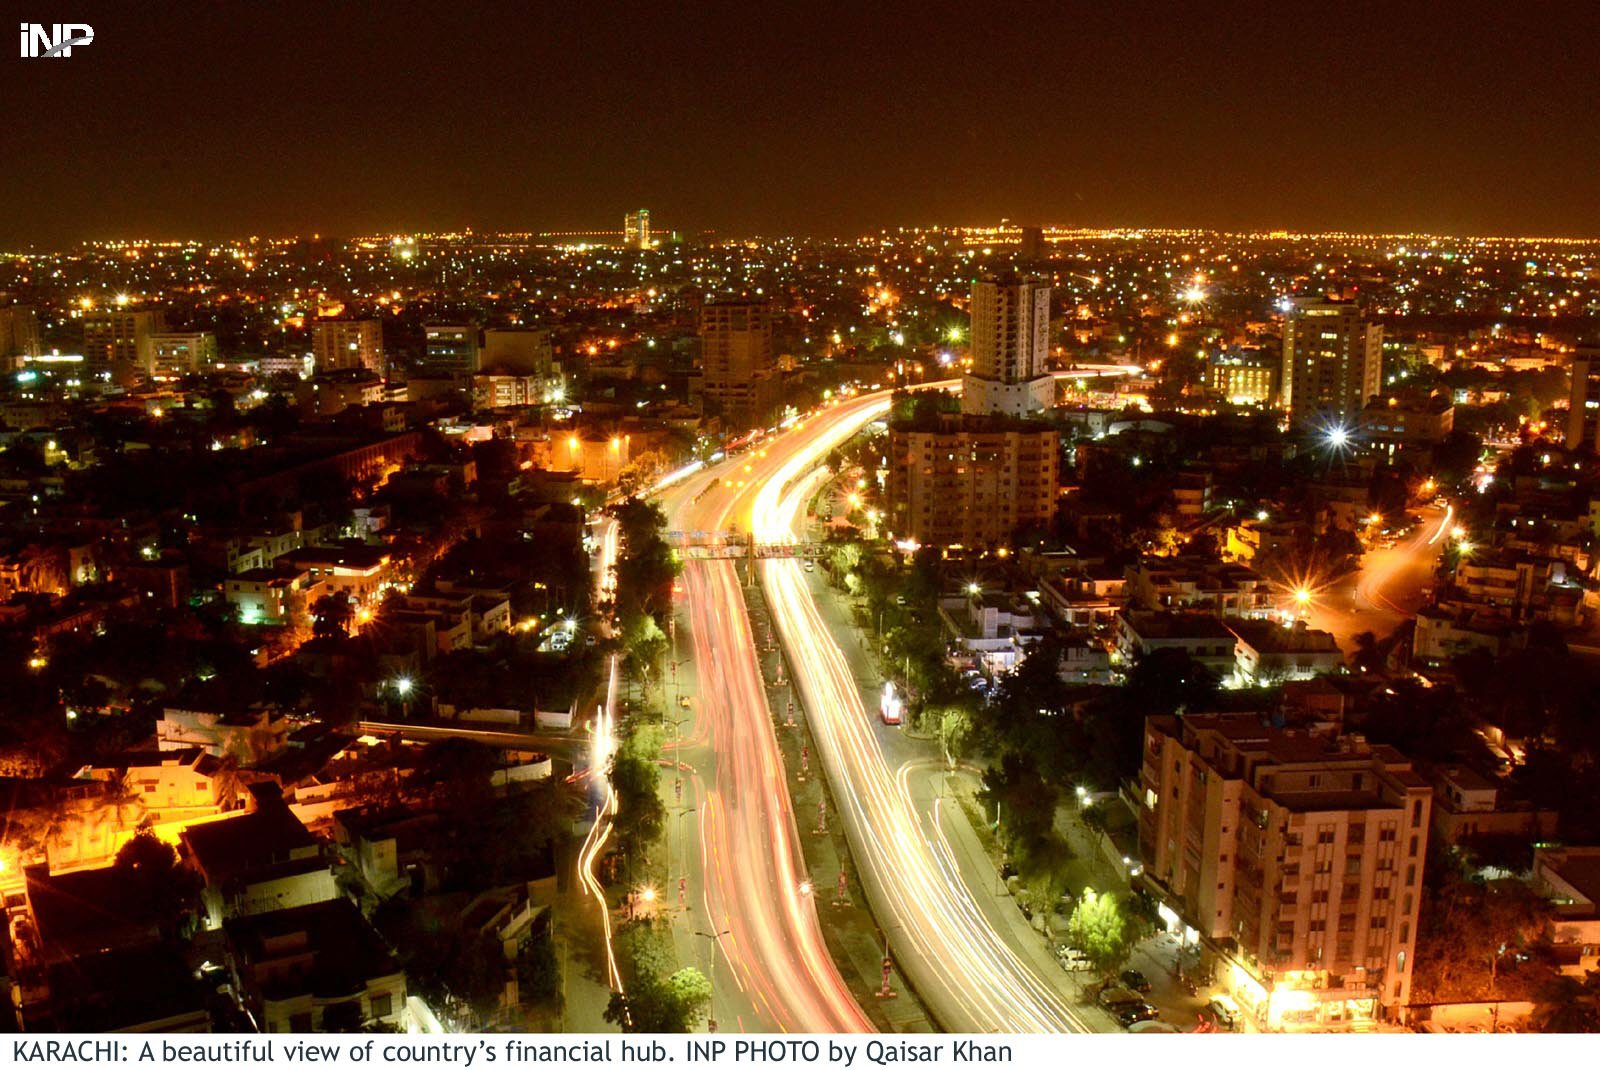 khi_city_view_inp-2-4-2-2-2-2-2-2-2-2